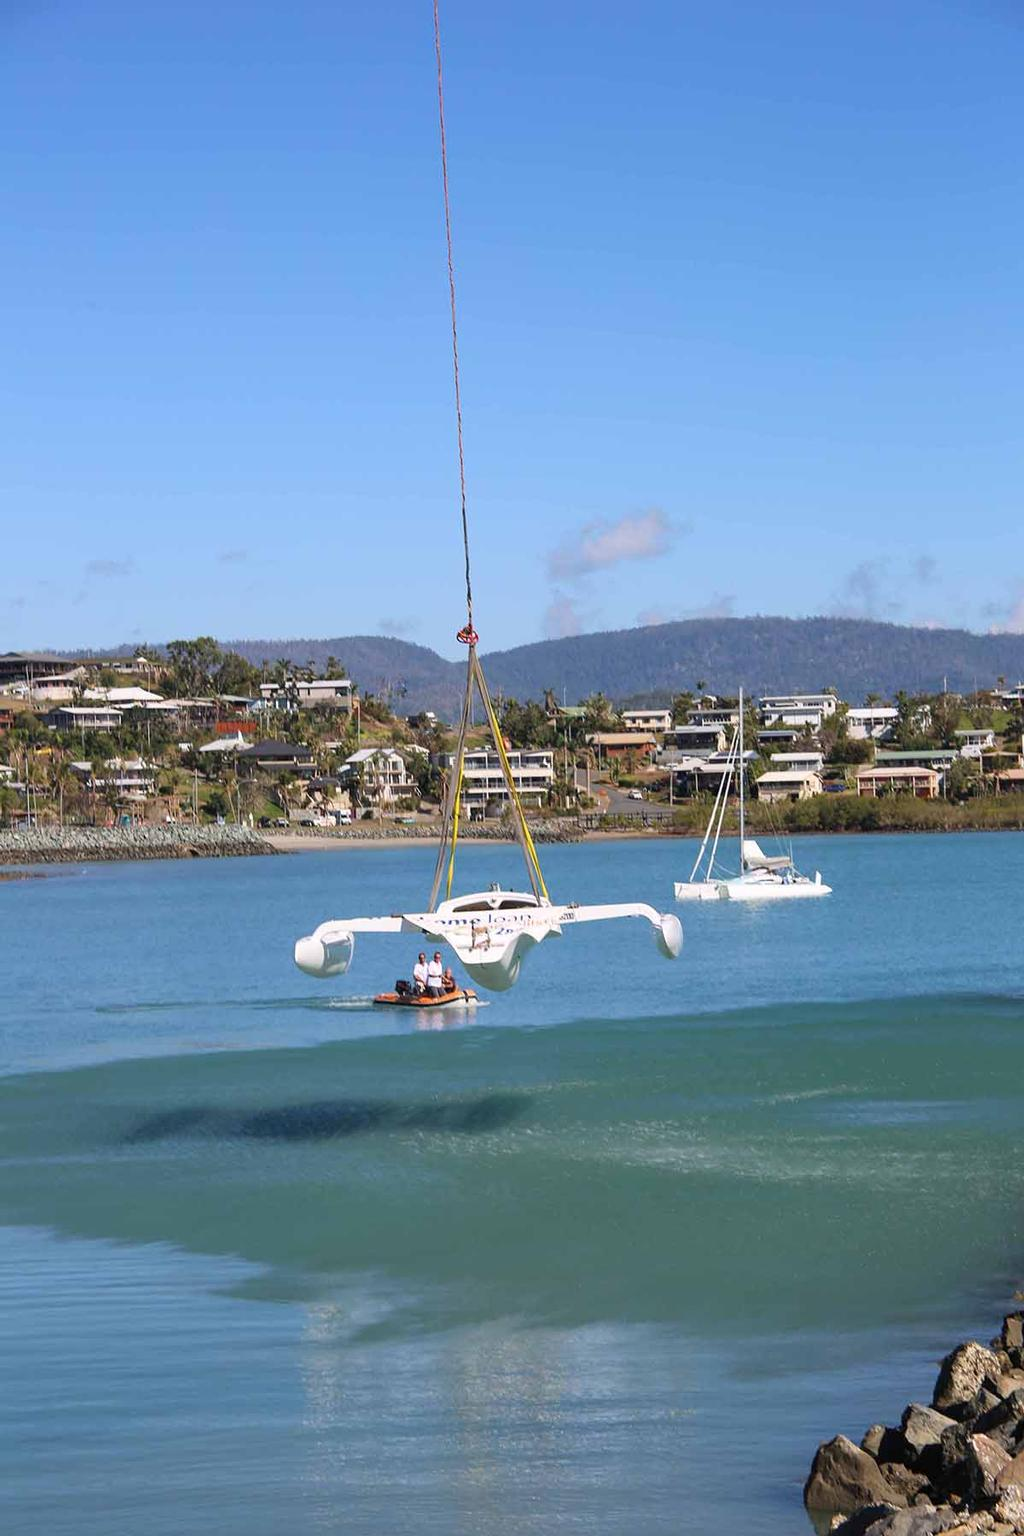 G'Nome ready to touch down off Whitsunday Sailing Club - 2017 Airlie Beach Race Week © Terry Archer